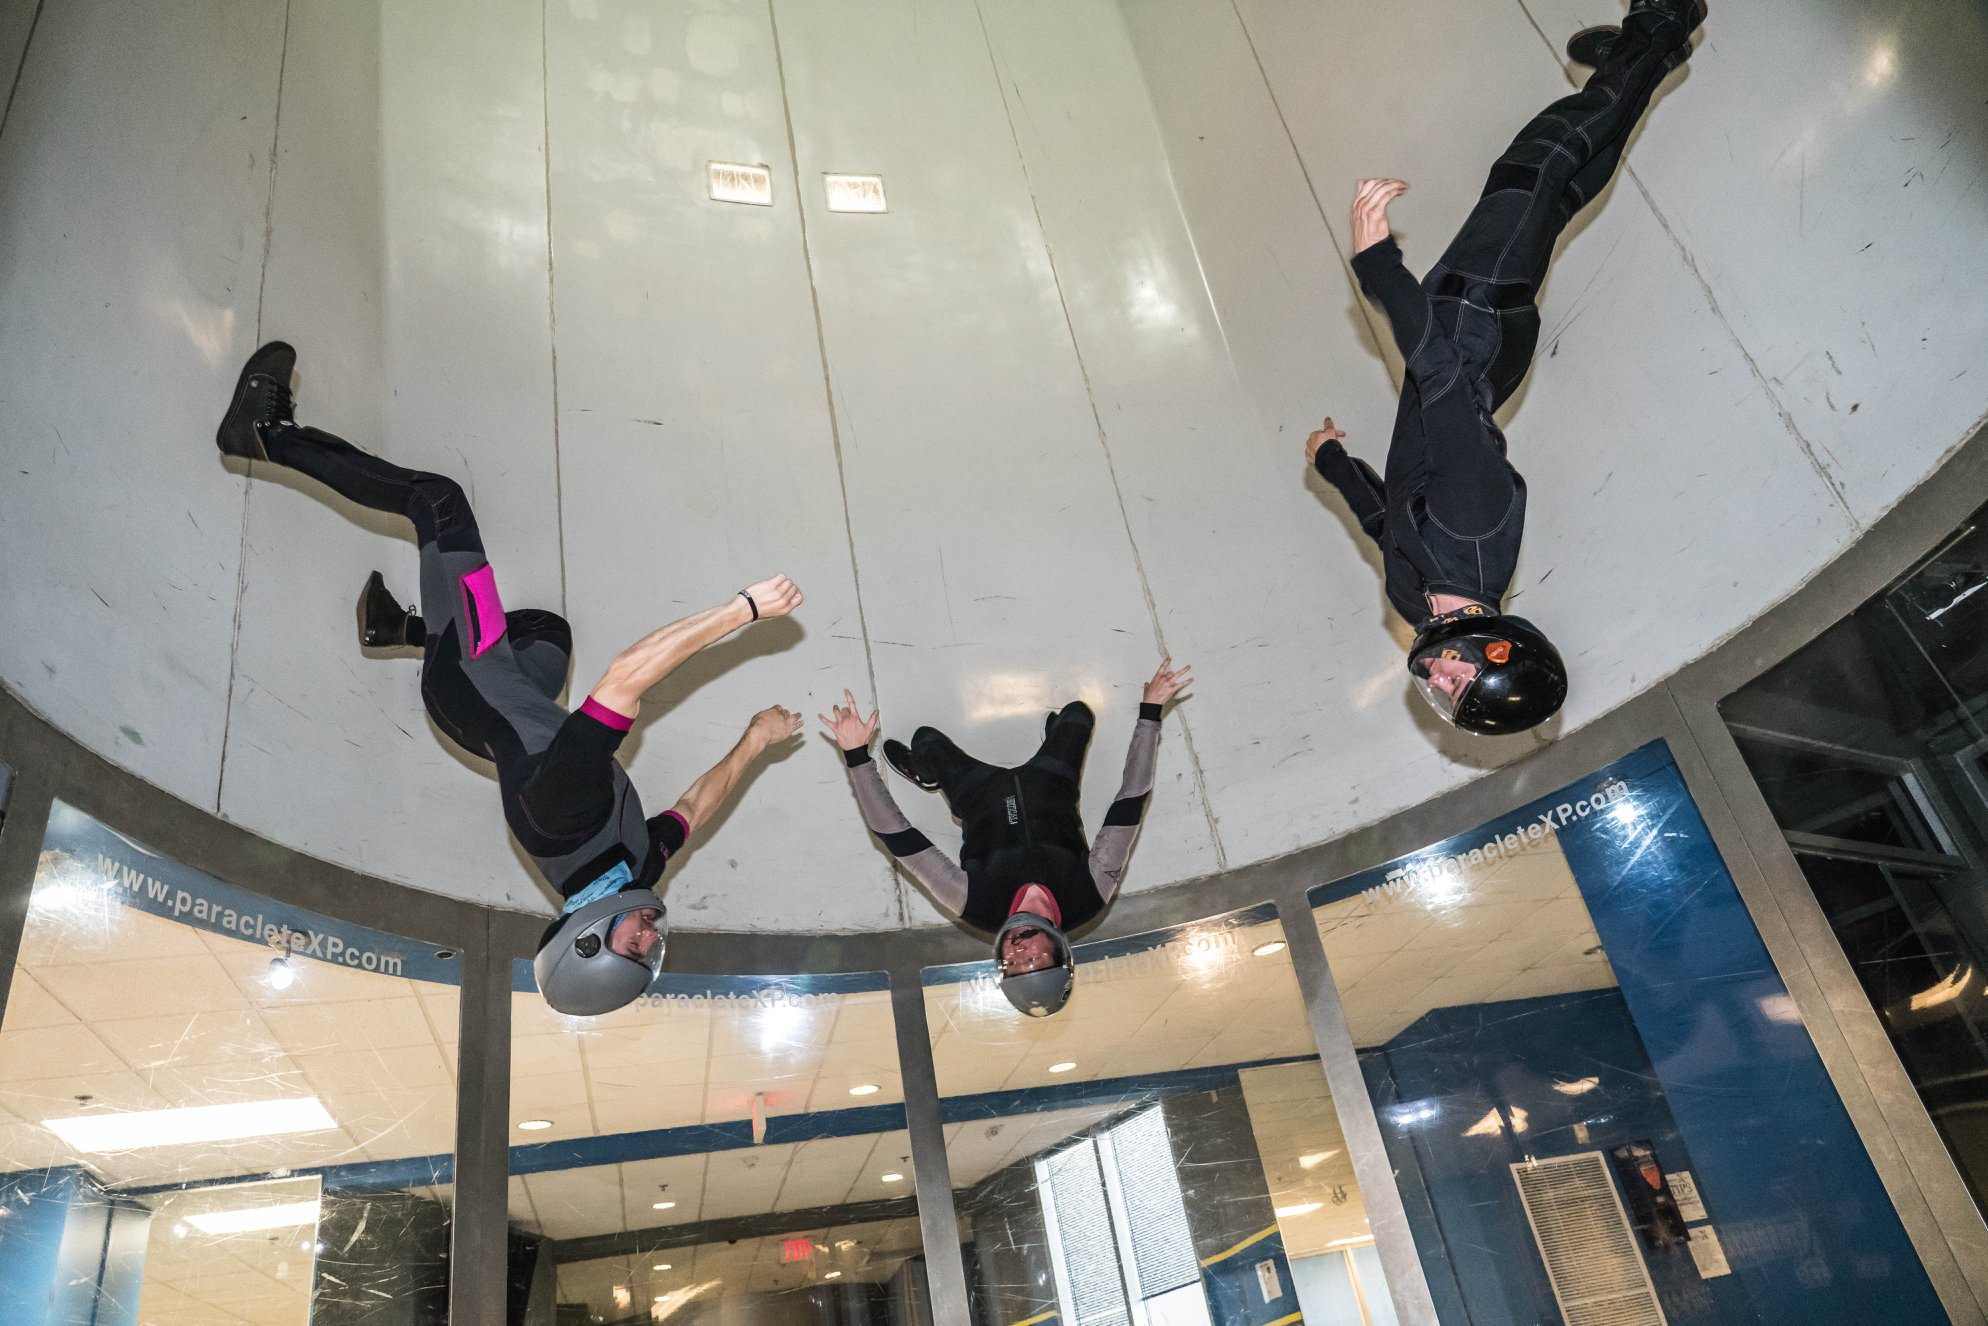 top 3 reasons to go indoor skydiving with friends